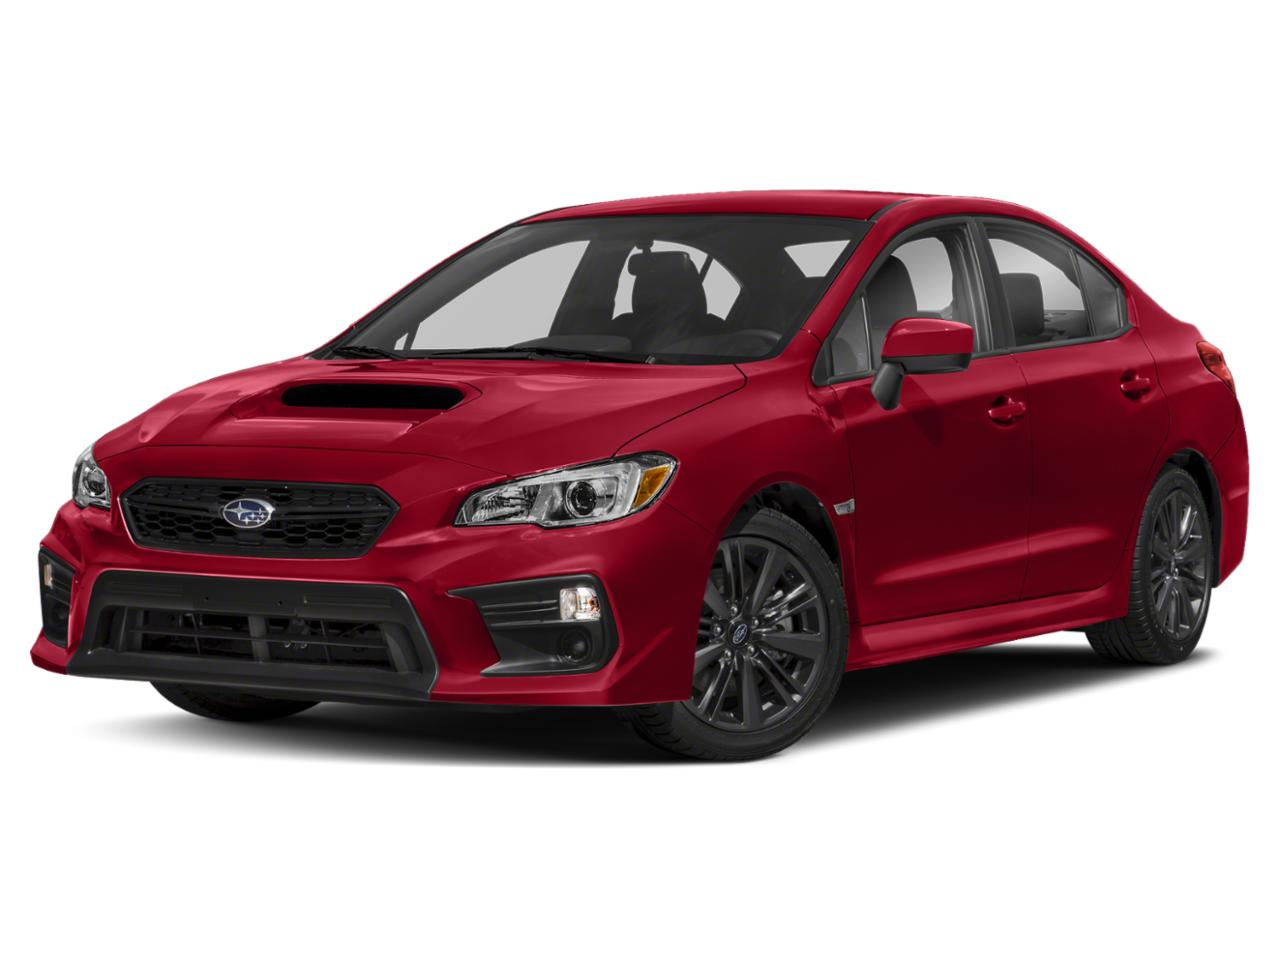 2018 Subaru WRX Vehicle Photo in Oshkosh, WI 54904